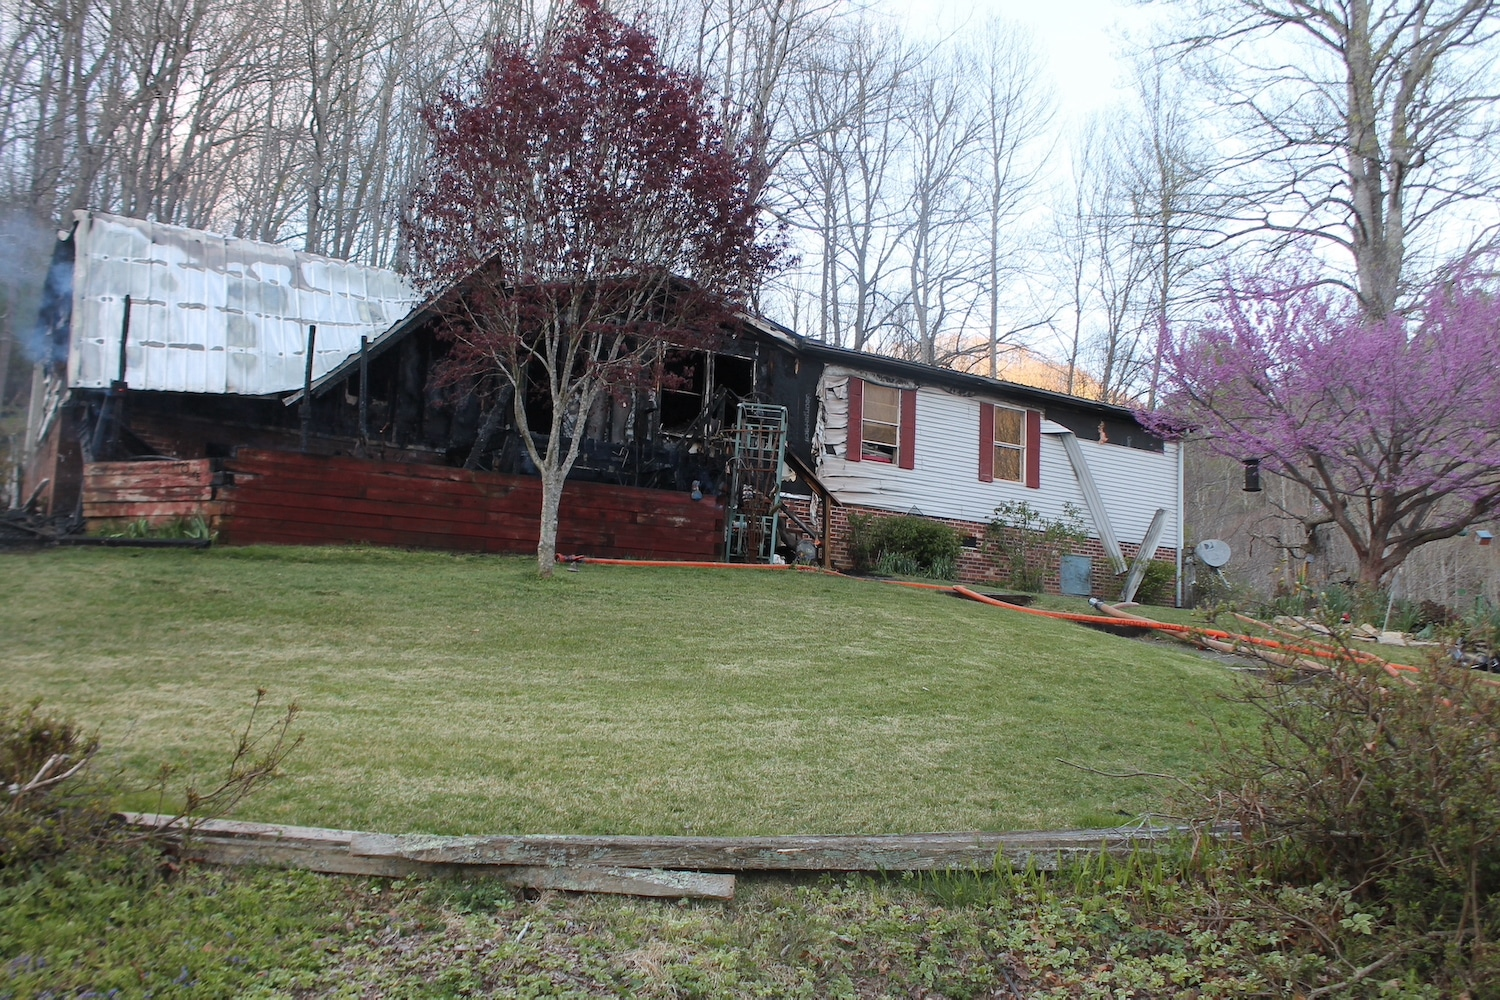 Double wide home total loss after fire caused by lawn mower